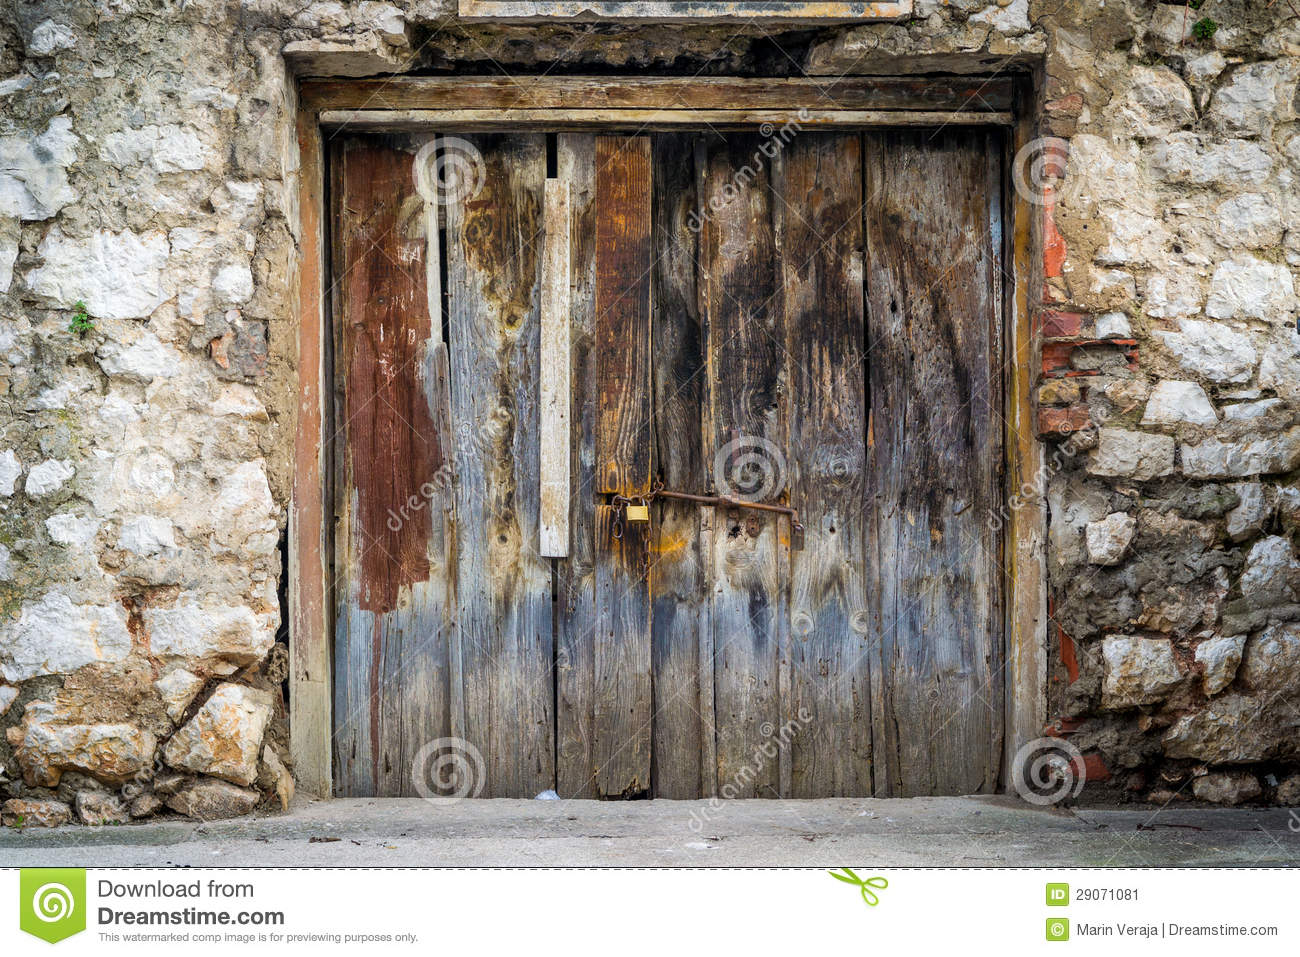 957 #82A328 Old Rustic Wooden Doors Stock Image Image: 29071081 image Rustic Wooden Doors 39531300